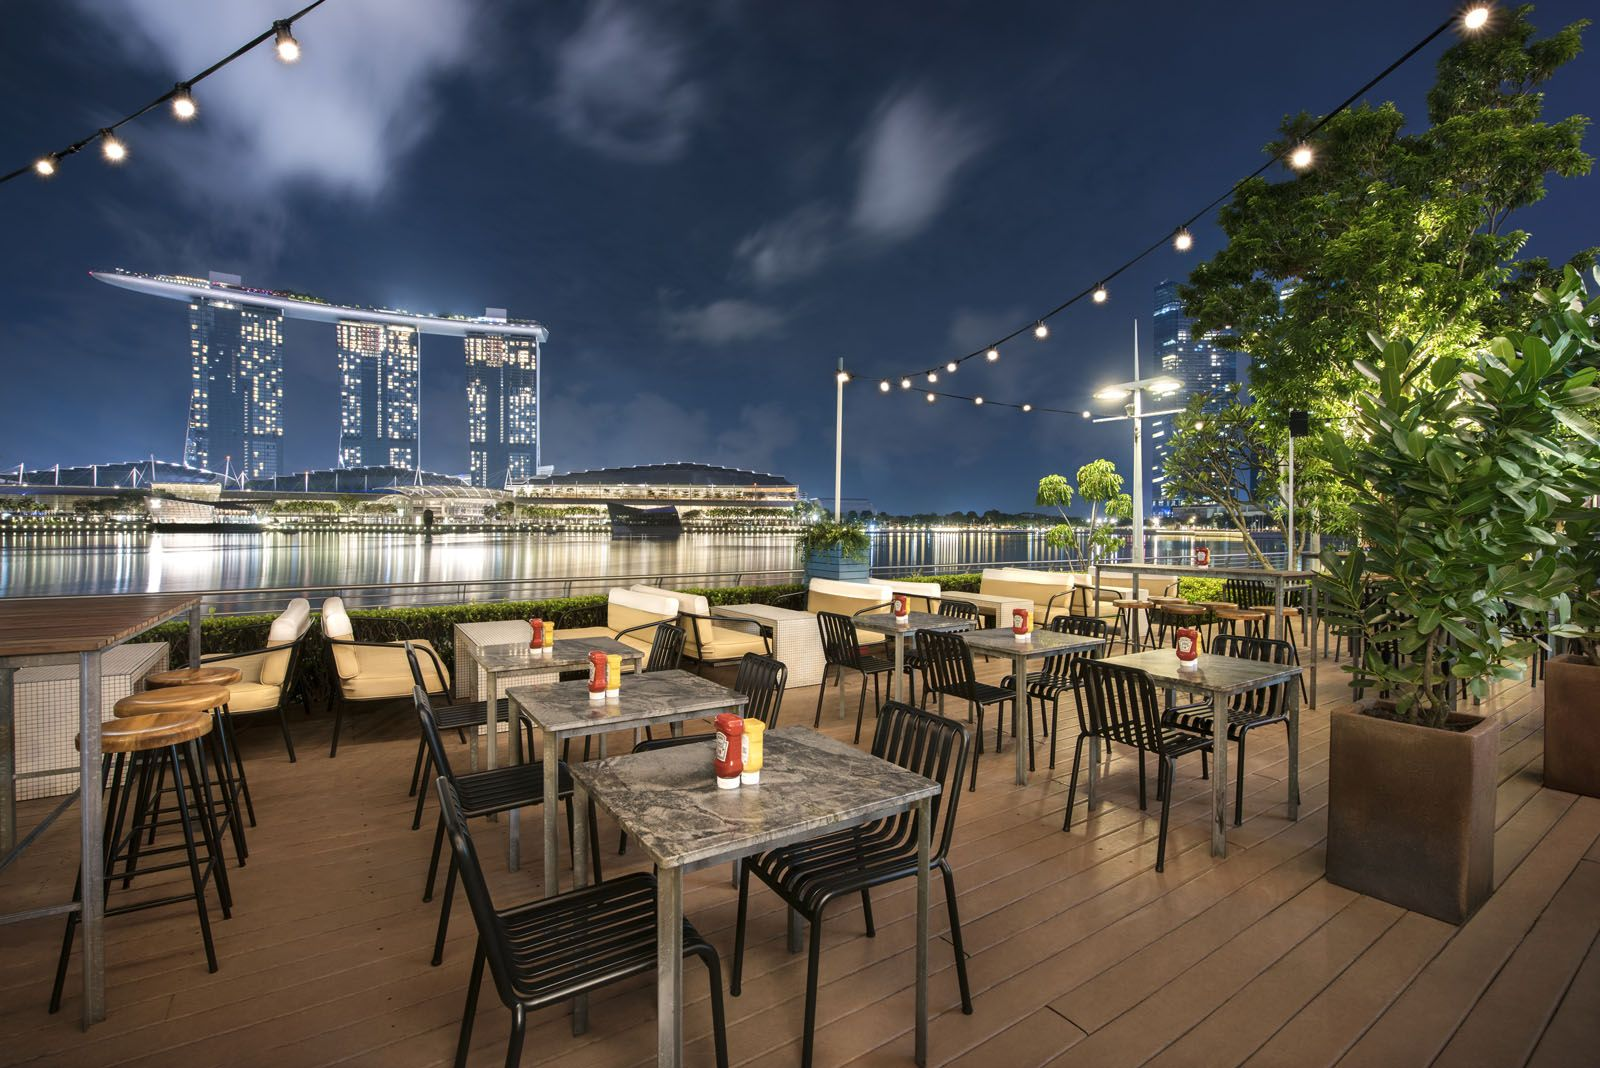 The Best Al Fresco Restaurants to Visit in Singapore